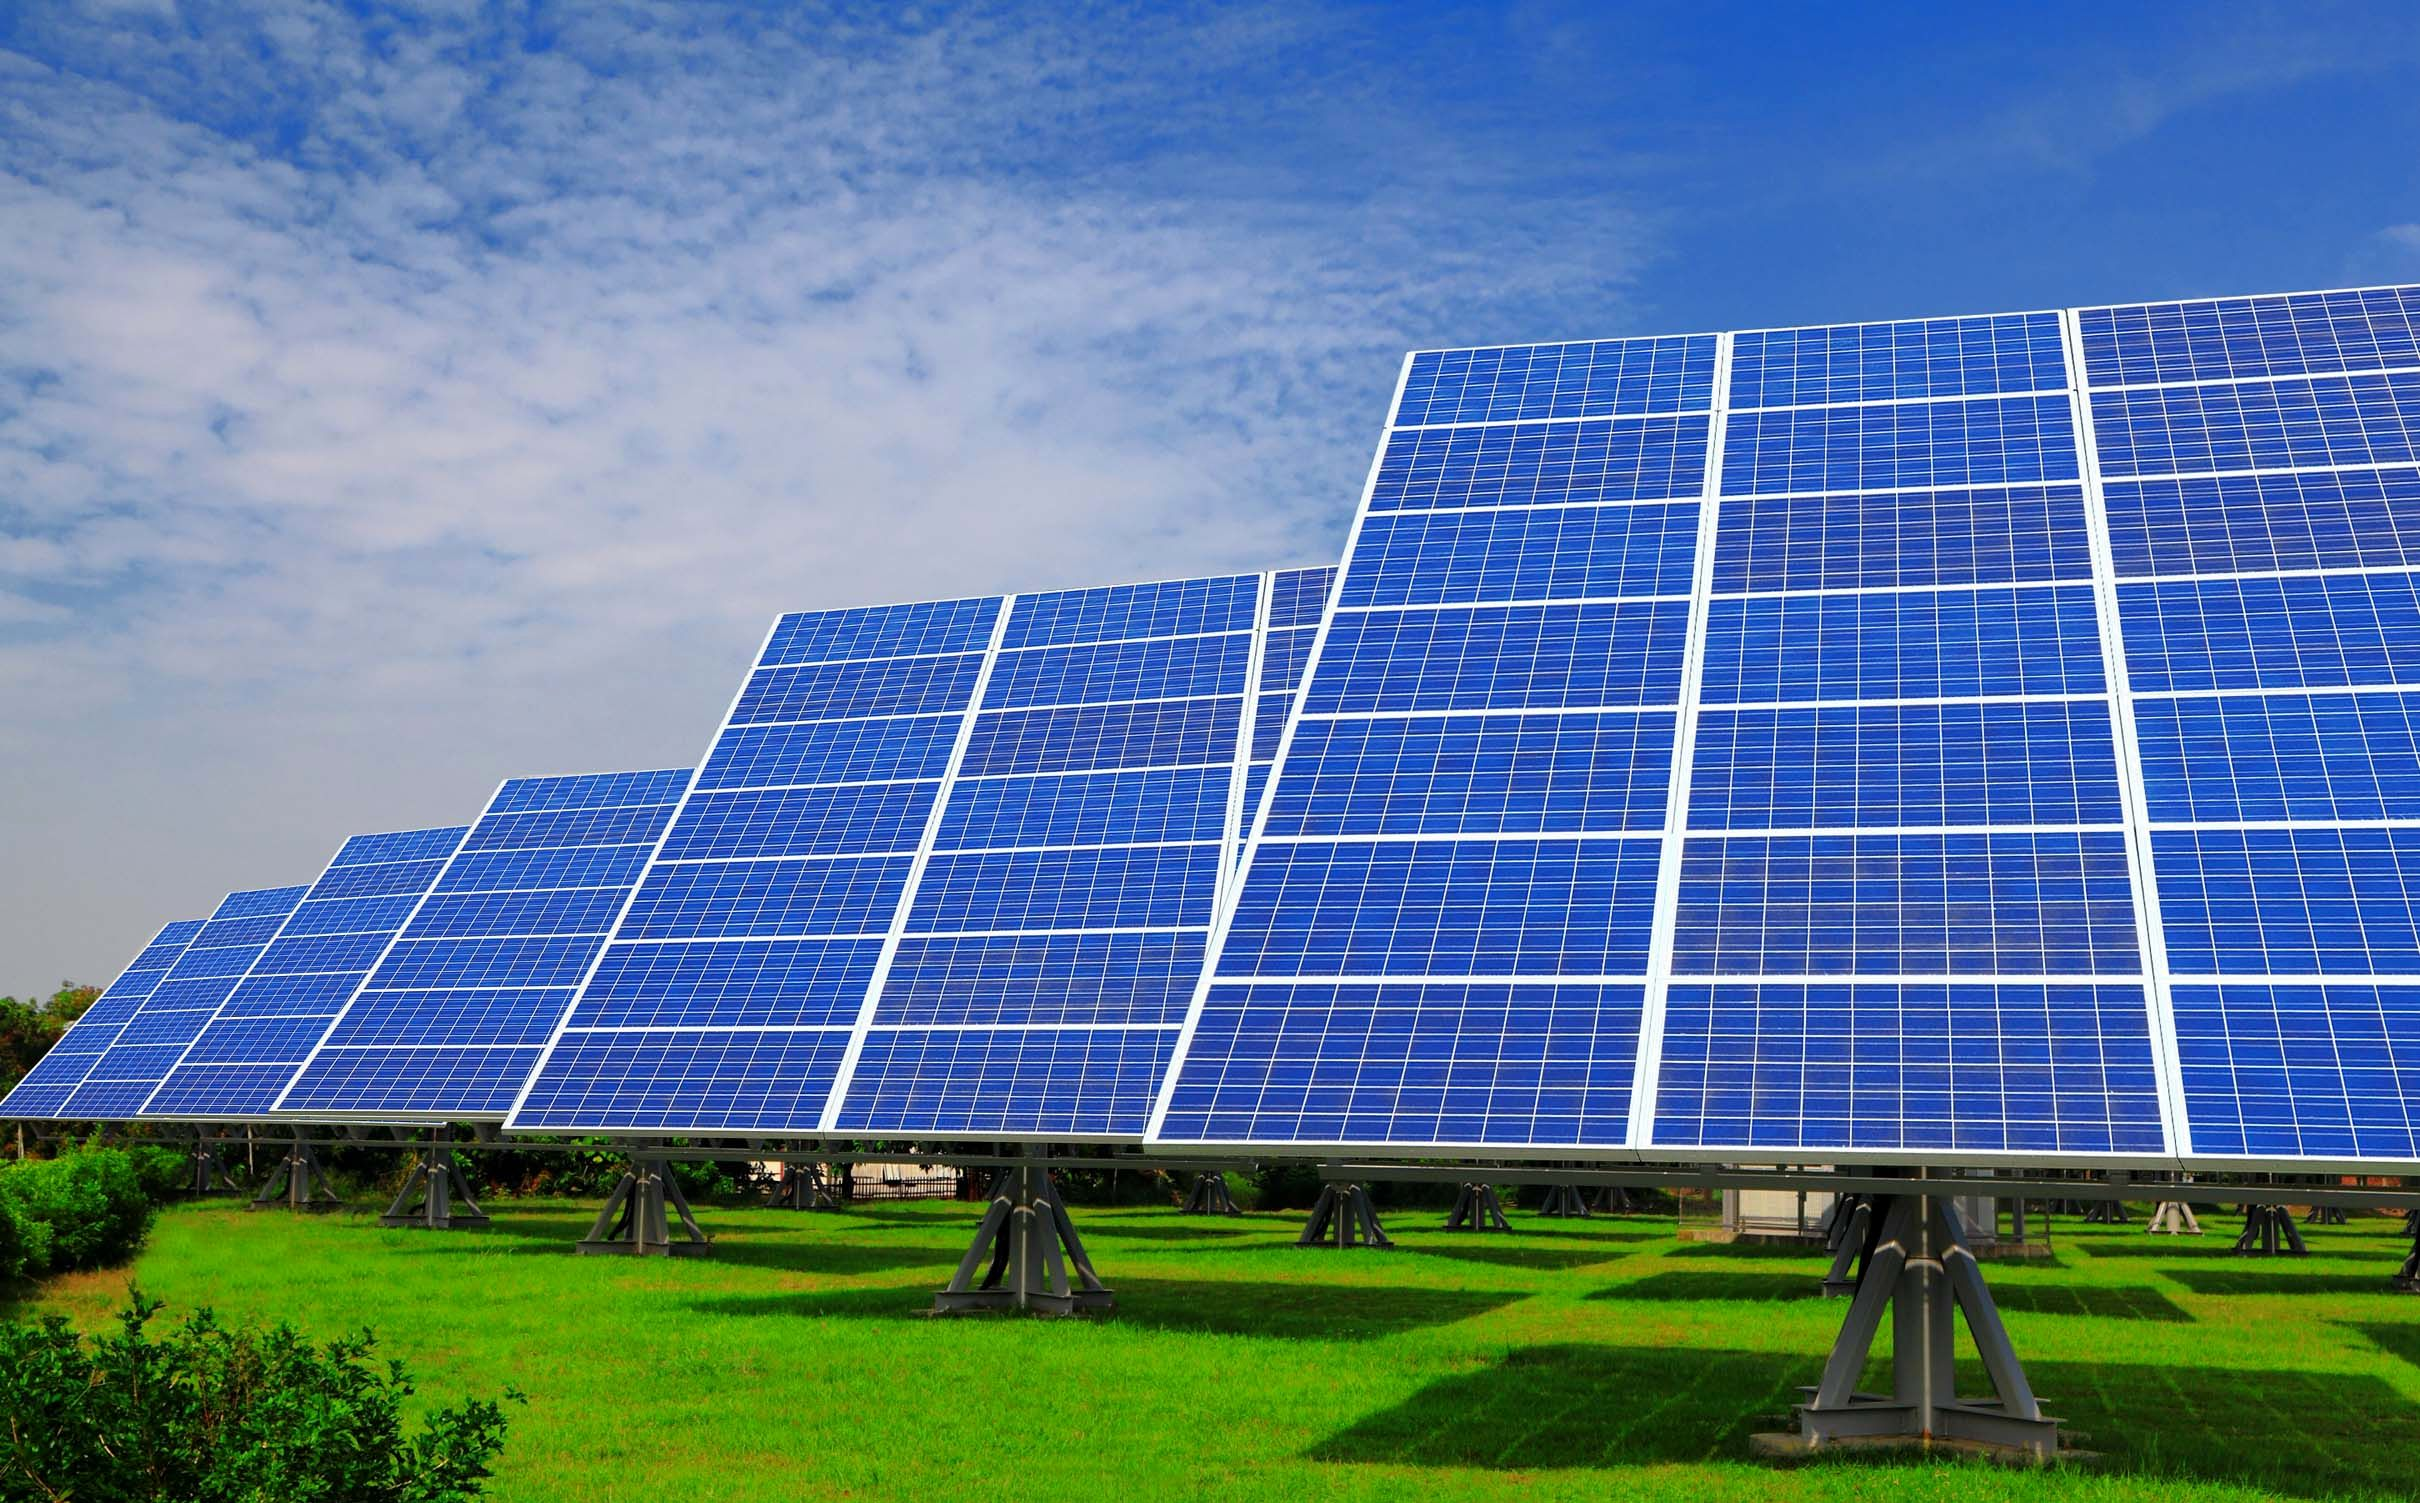 solar panels When choosing among rooftop solar panels, there are a number of factors to consider first, you'll want to weigh the cost of purchase and installation against the potential energy savings.